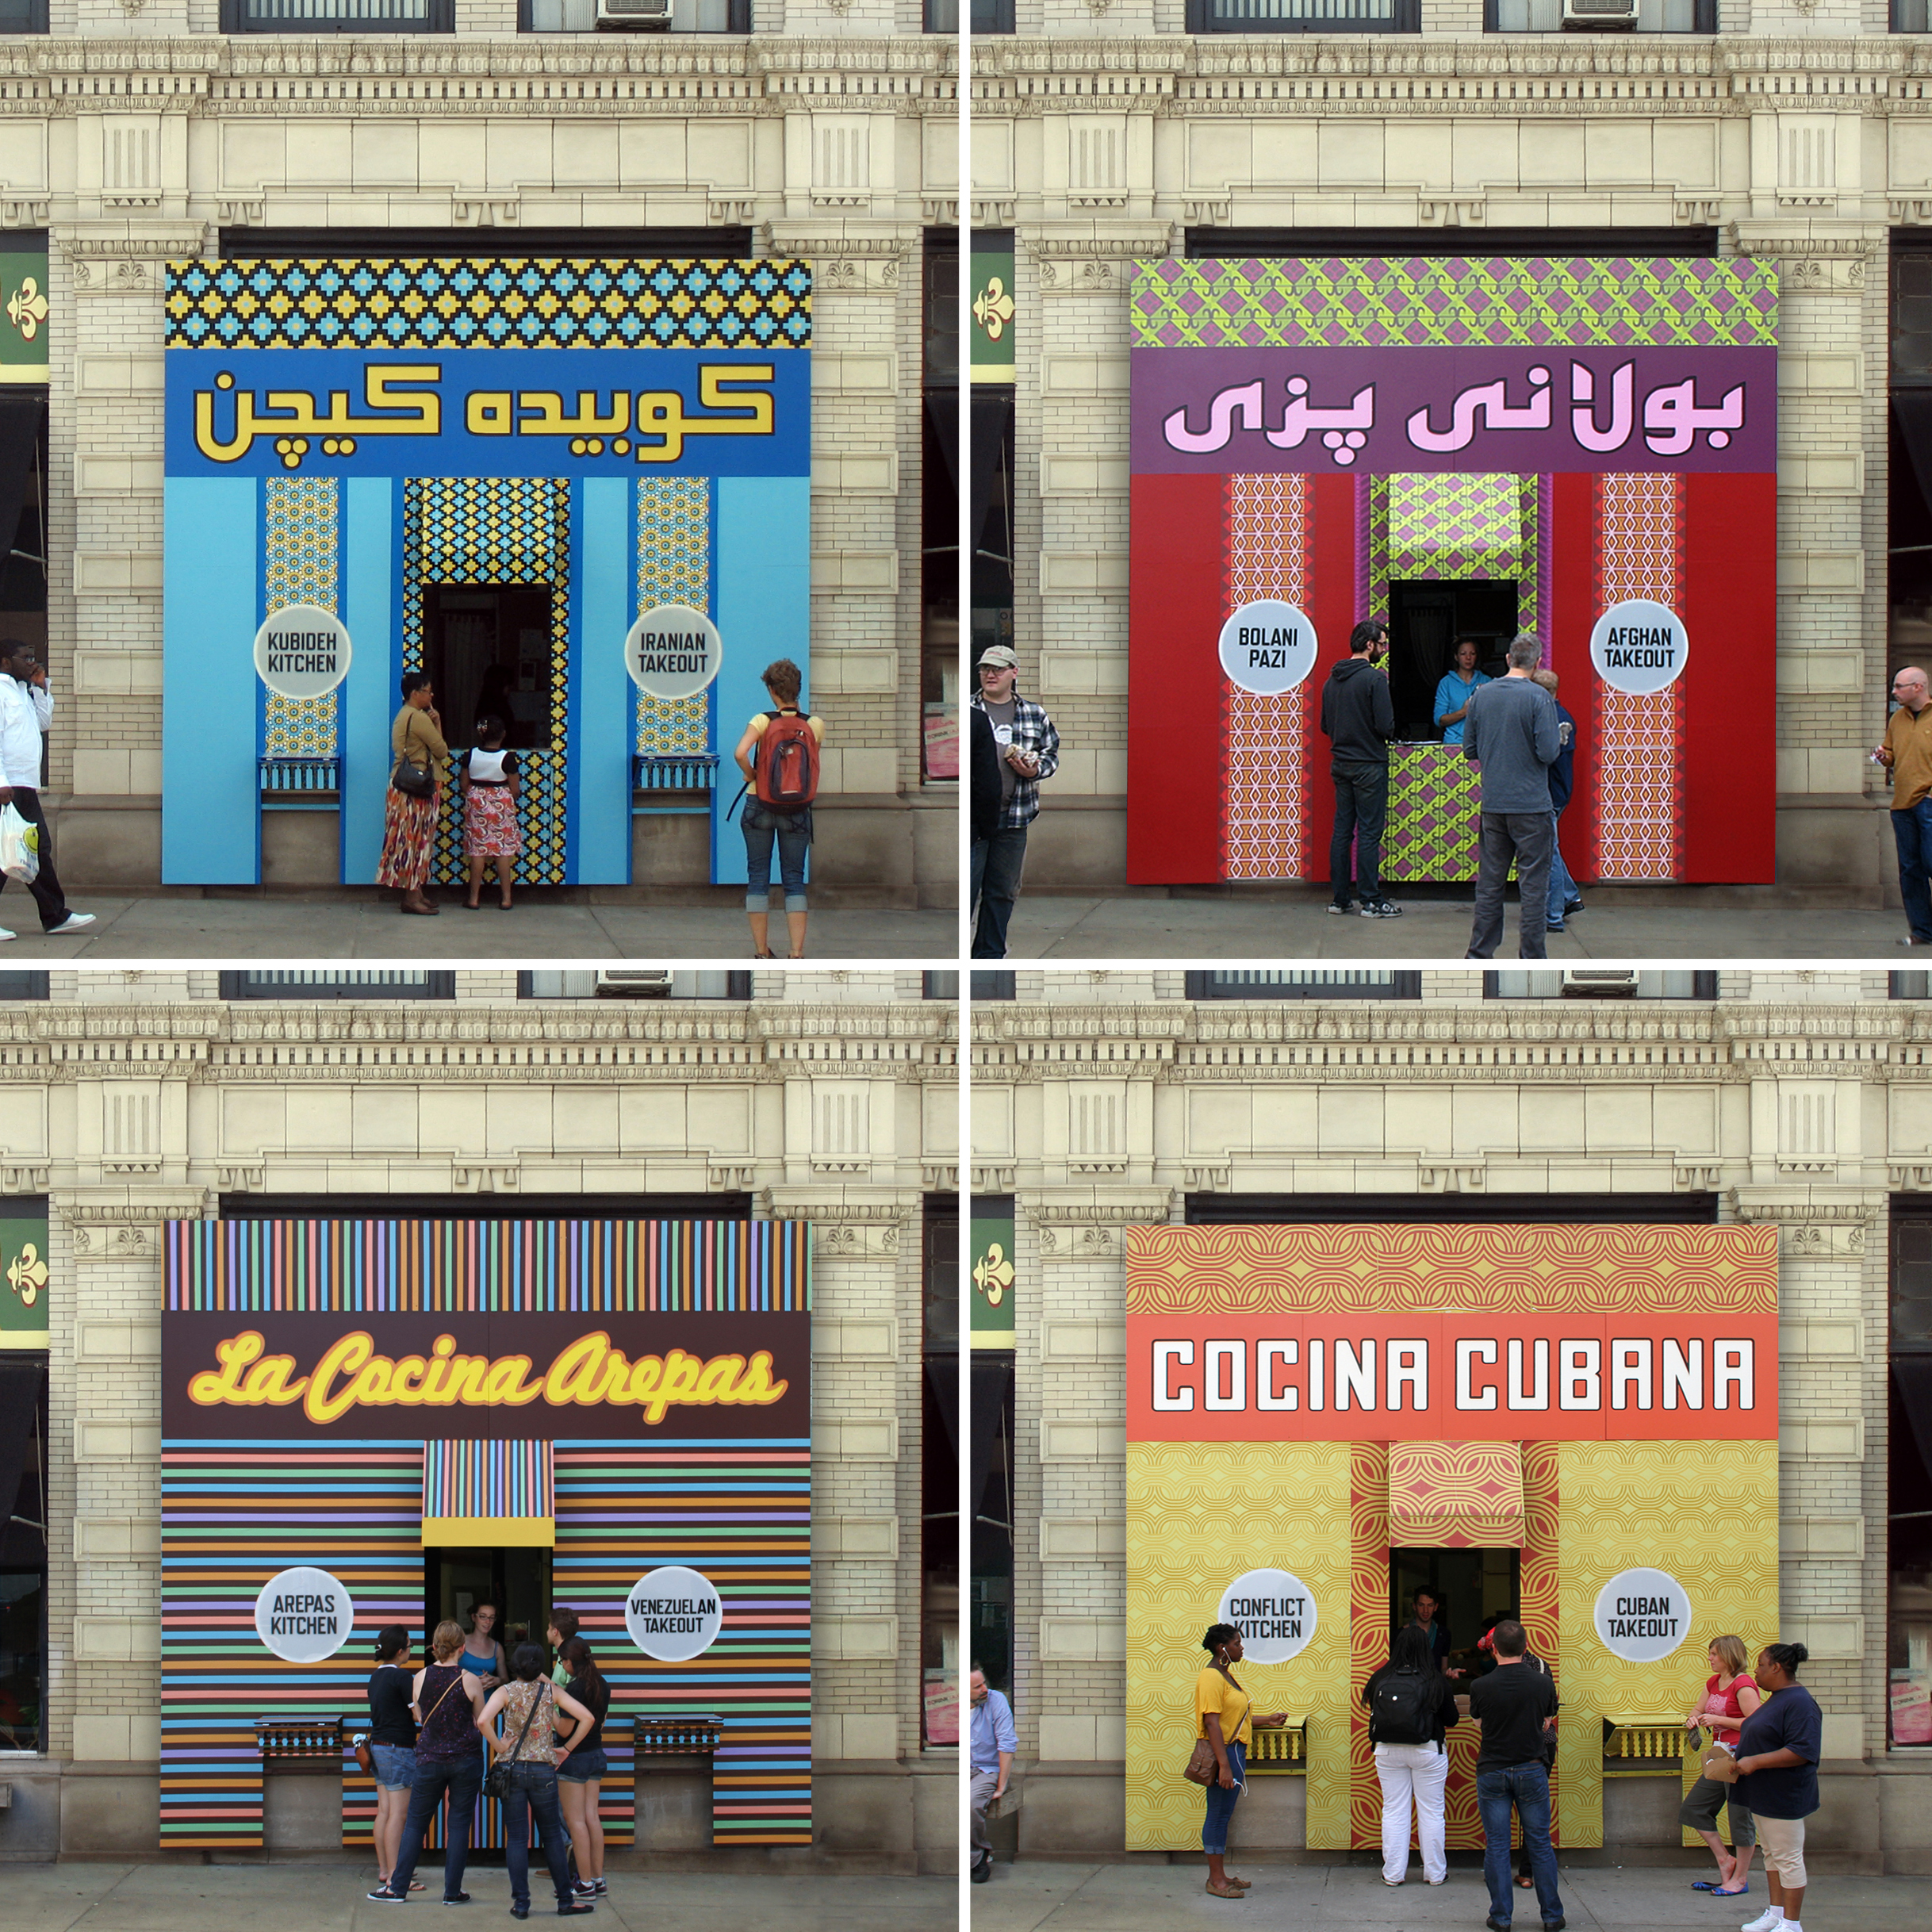 Conflict Kitchen in its four first incarnations (clockwise from top left): Kubideh Kitchen (Iran), Bolani Pazi (Afghanistan), Cocina Cubana (Cuba), La Cocina Arepas (Venezuela).